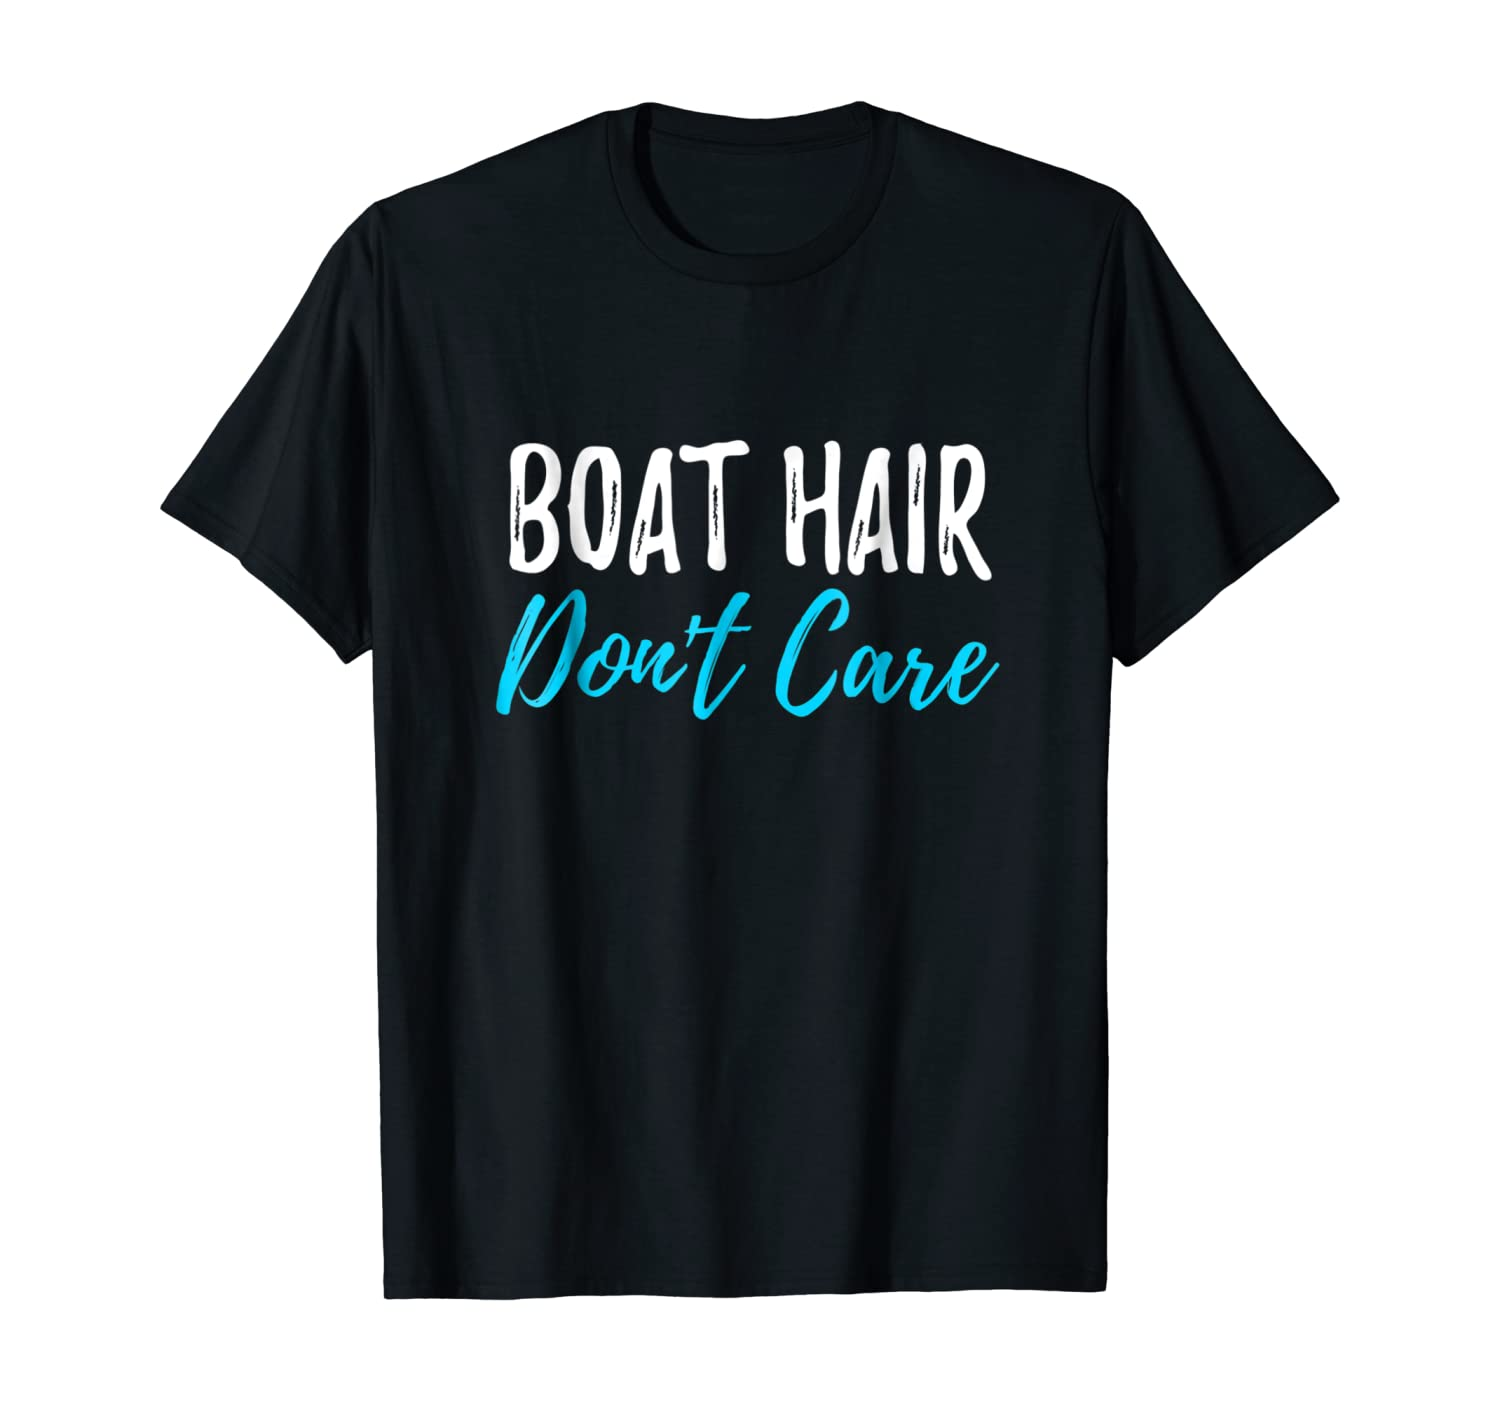 Boat Hair Don't Care T-Shirt Funny Gift for Boating Sailing